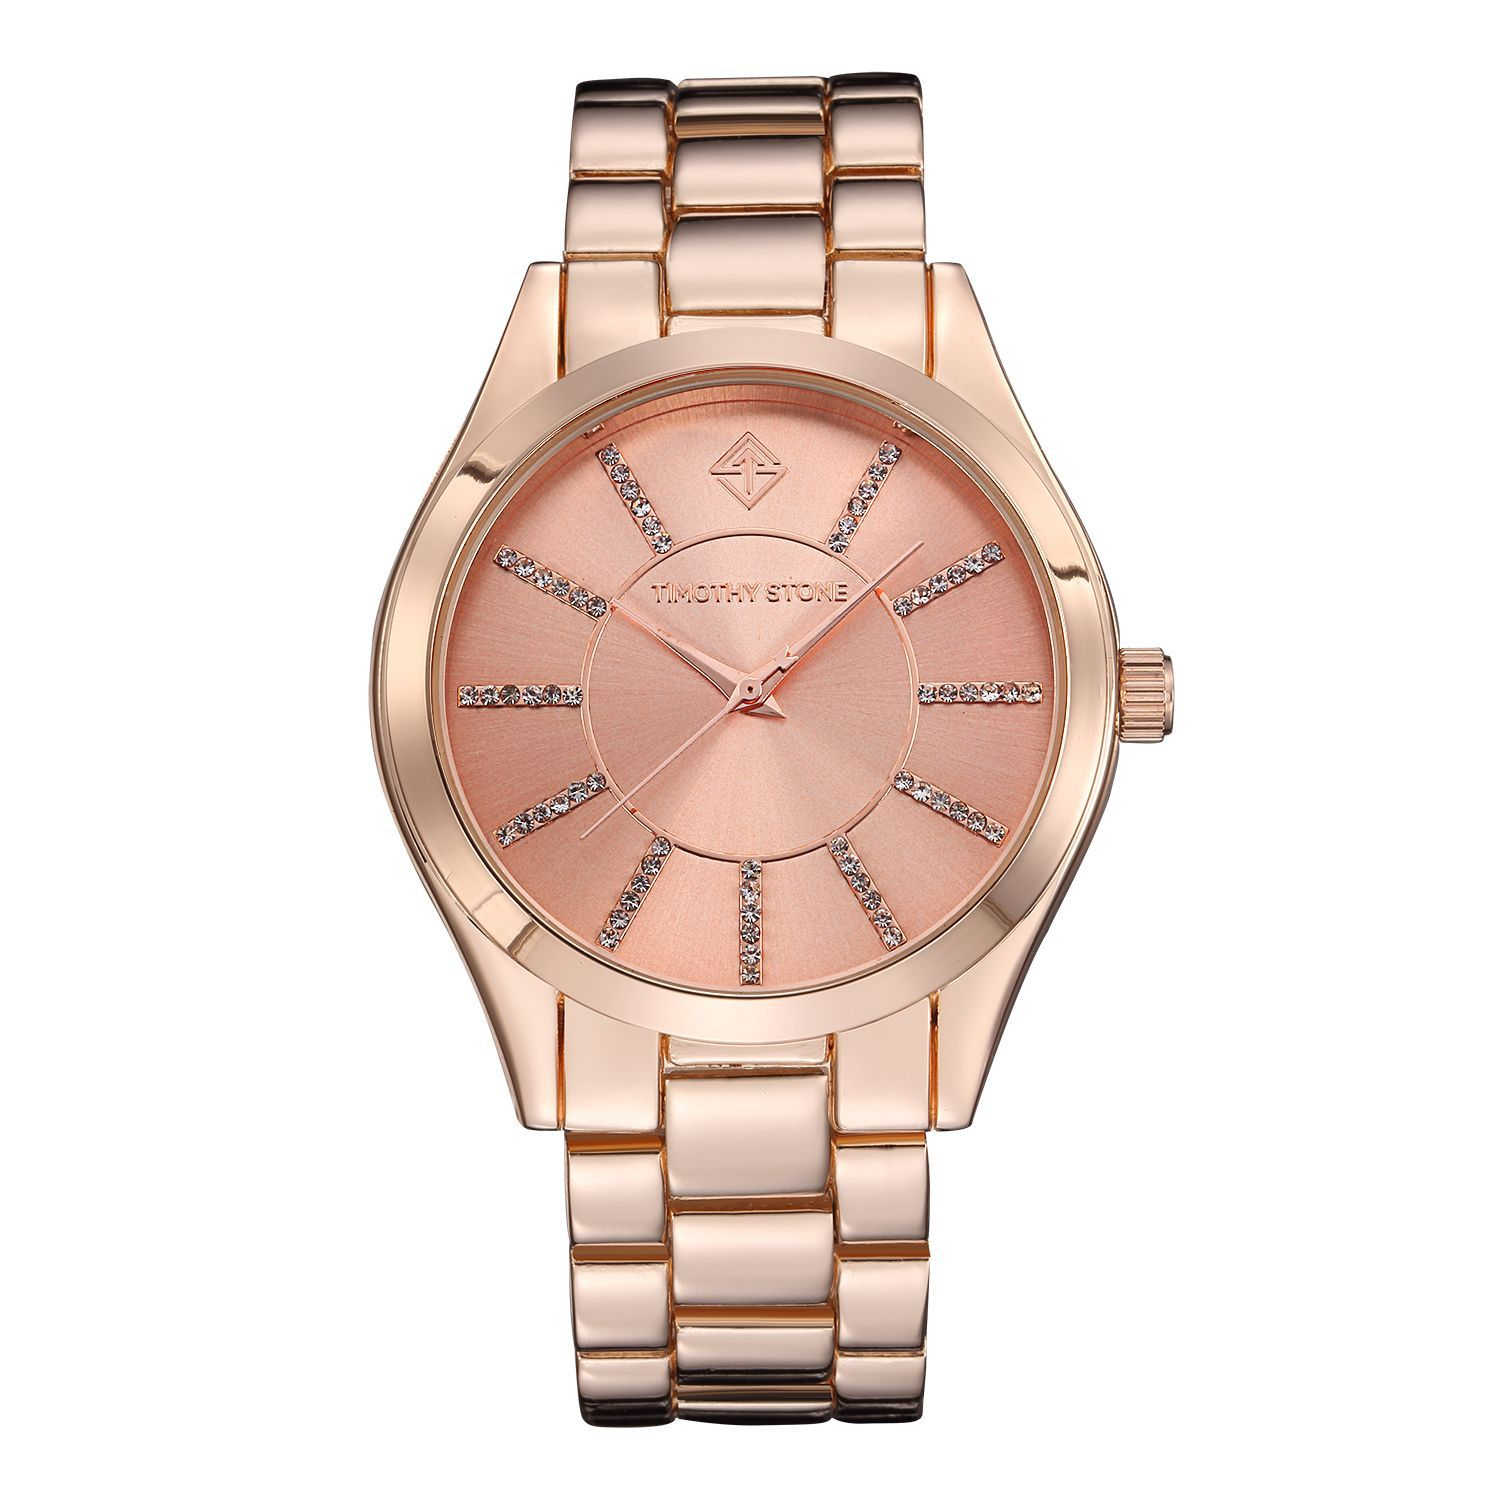 Timothy Stone Charme Women's Rose Goldtone Stainless Watch